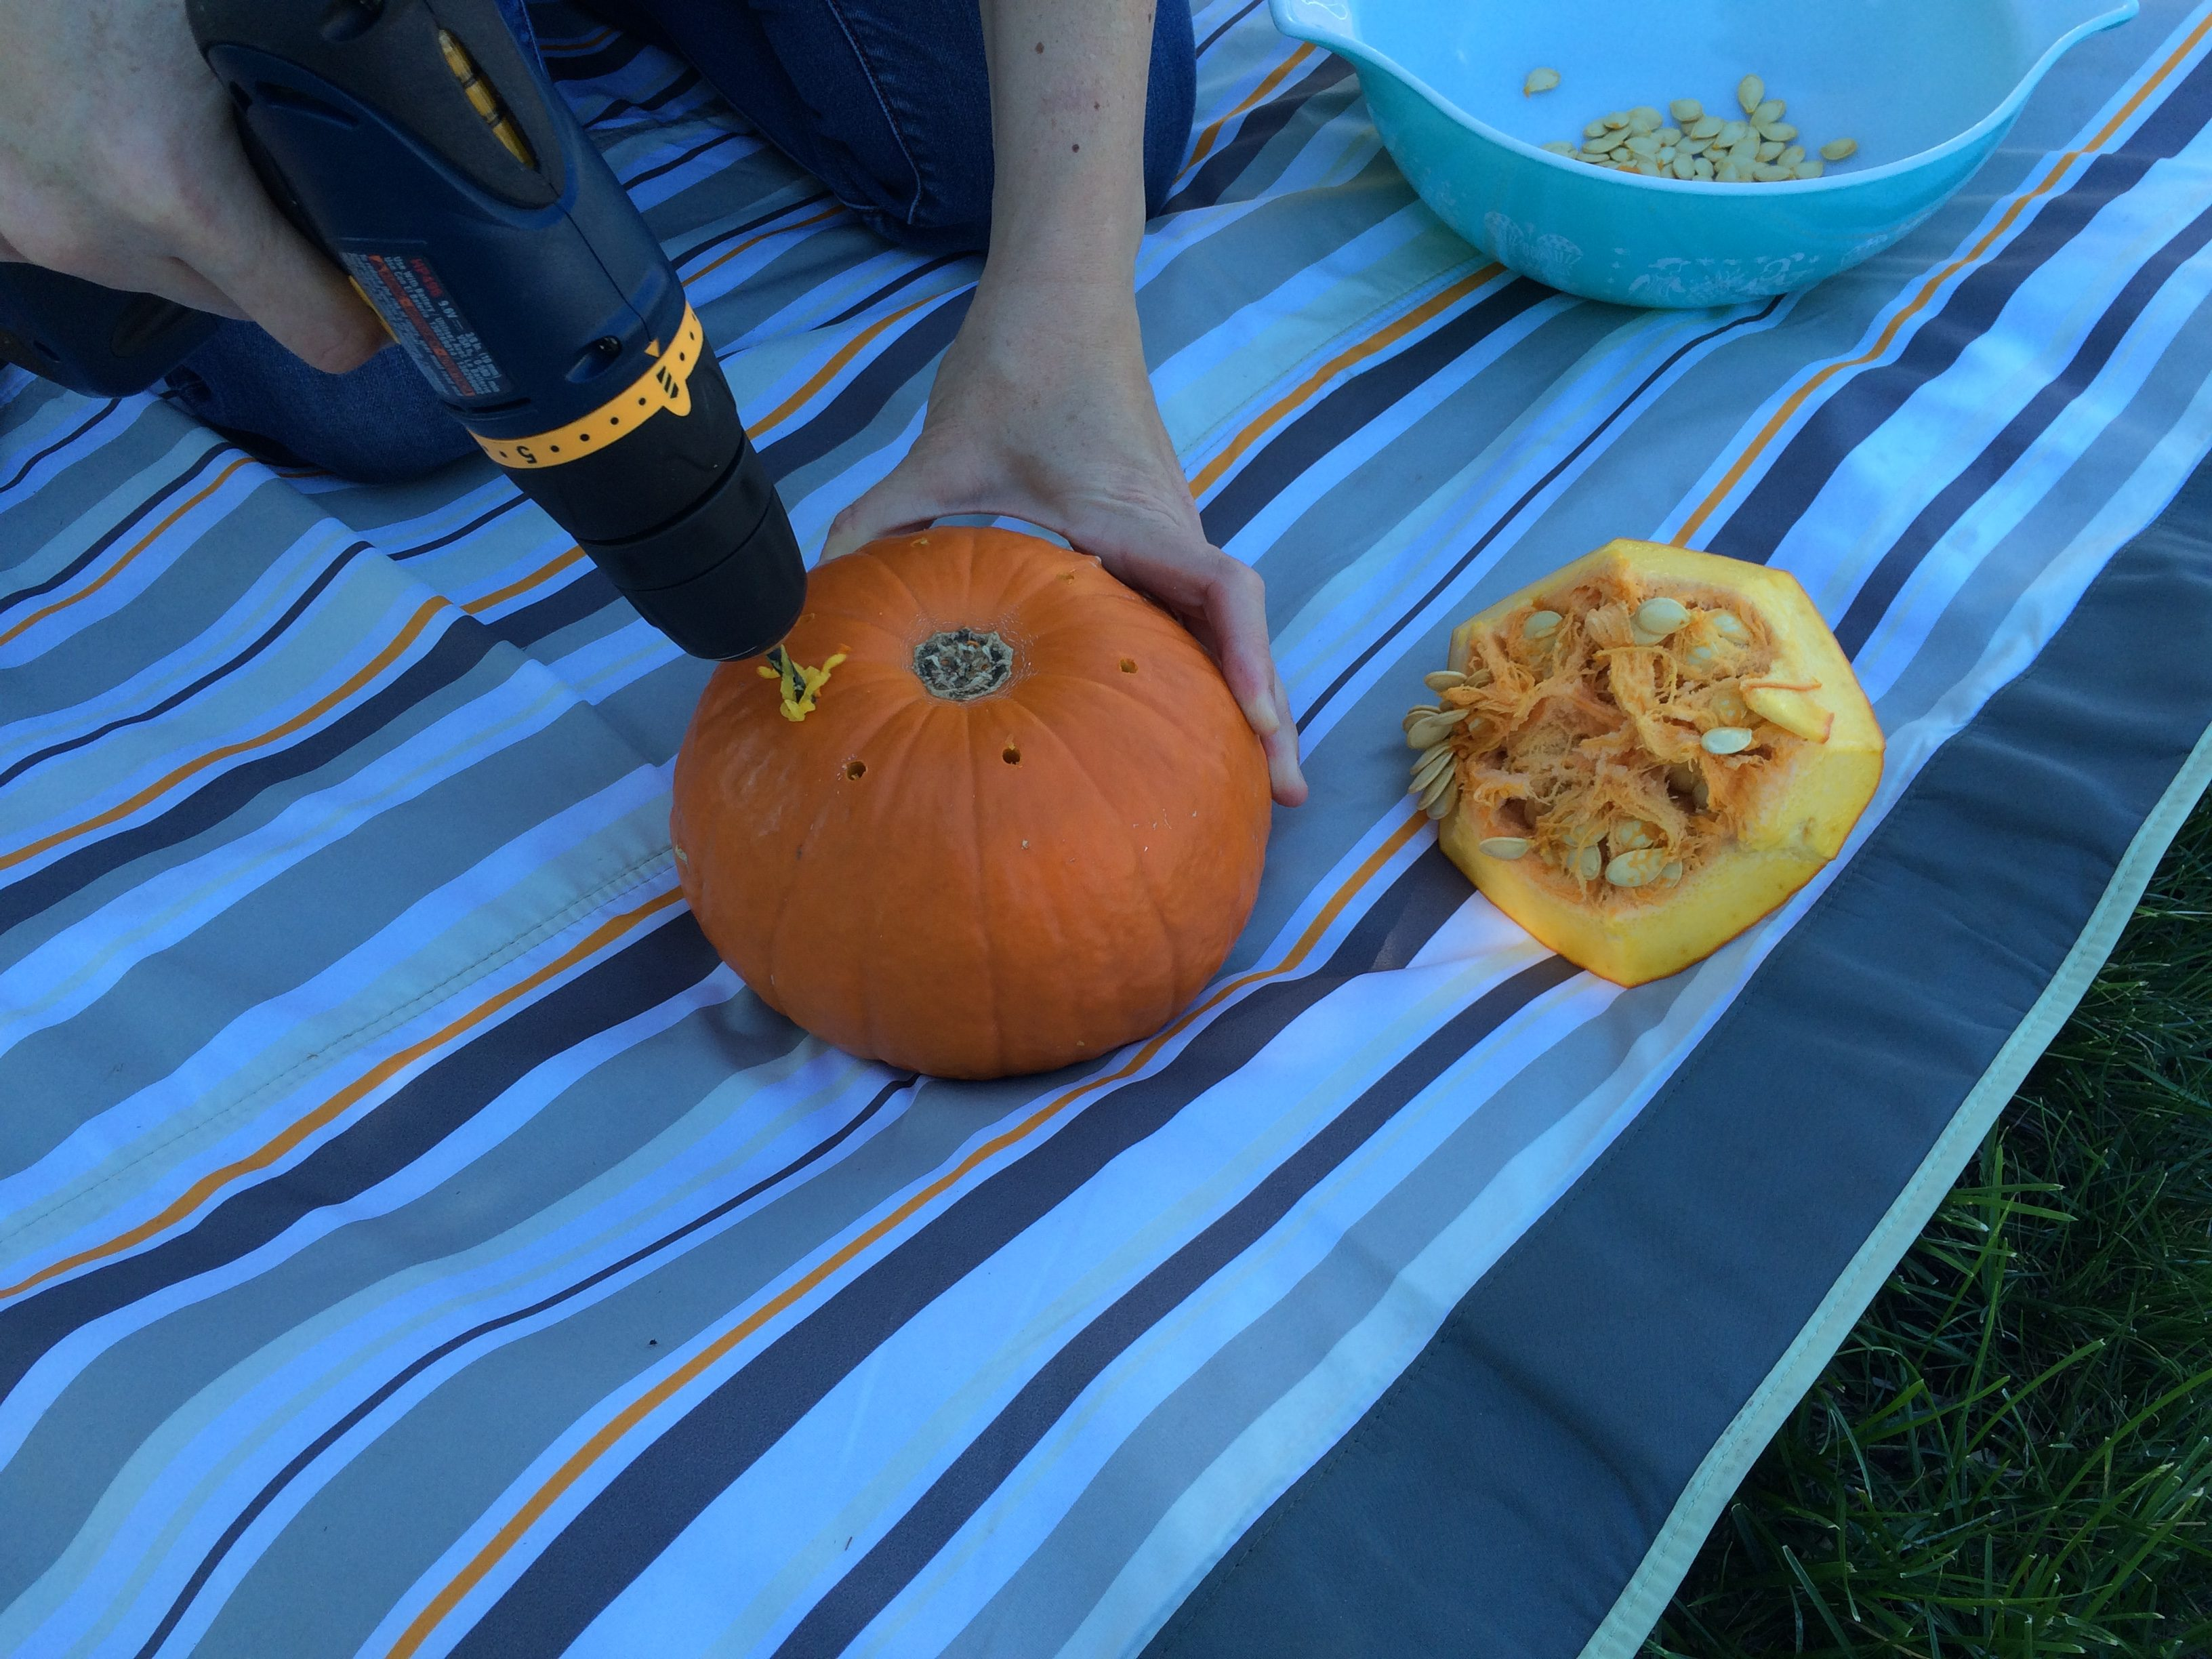 drilling holes in the bottom of the pumpkin